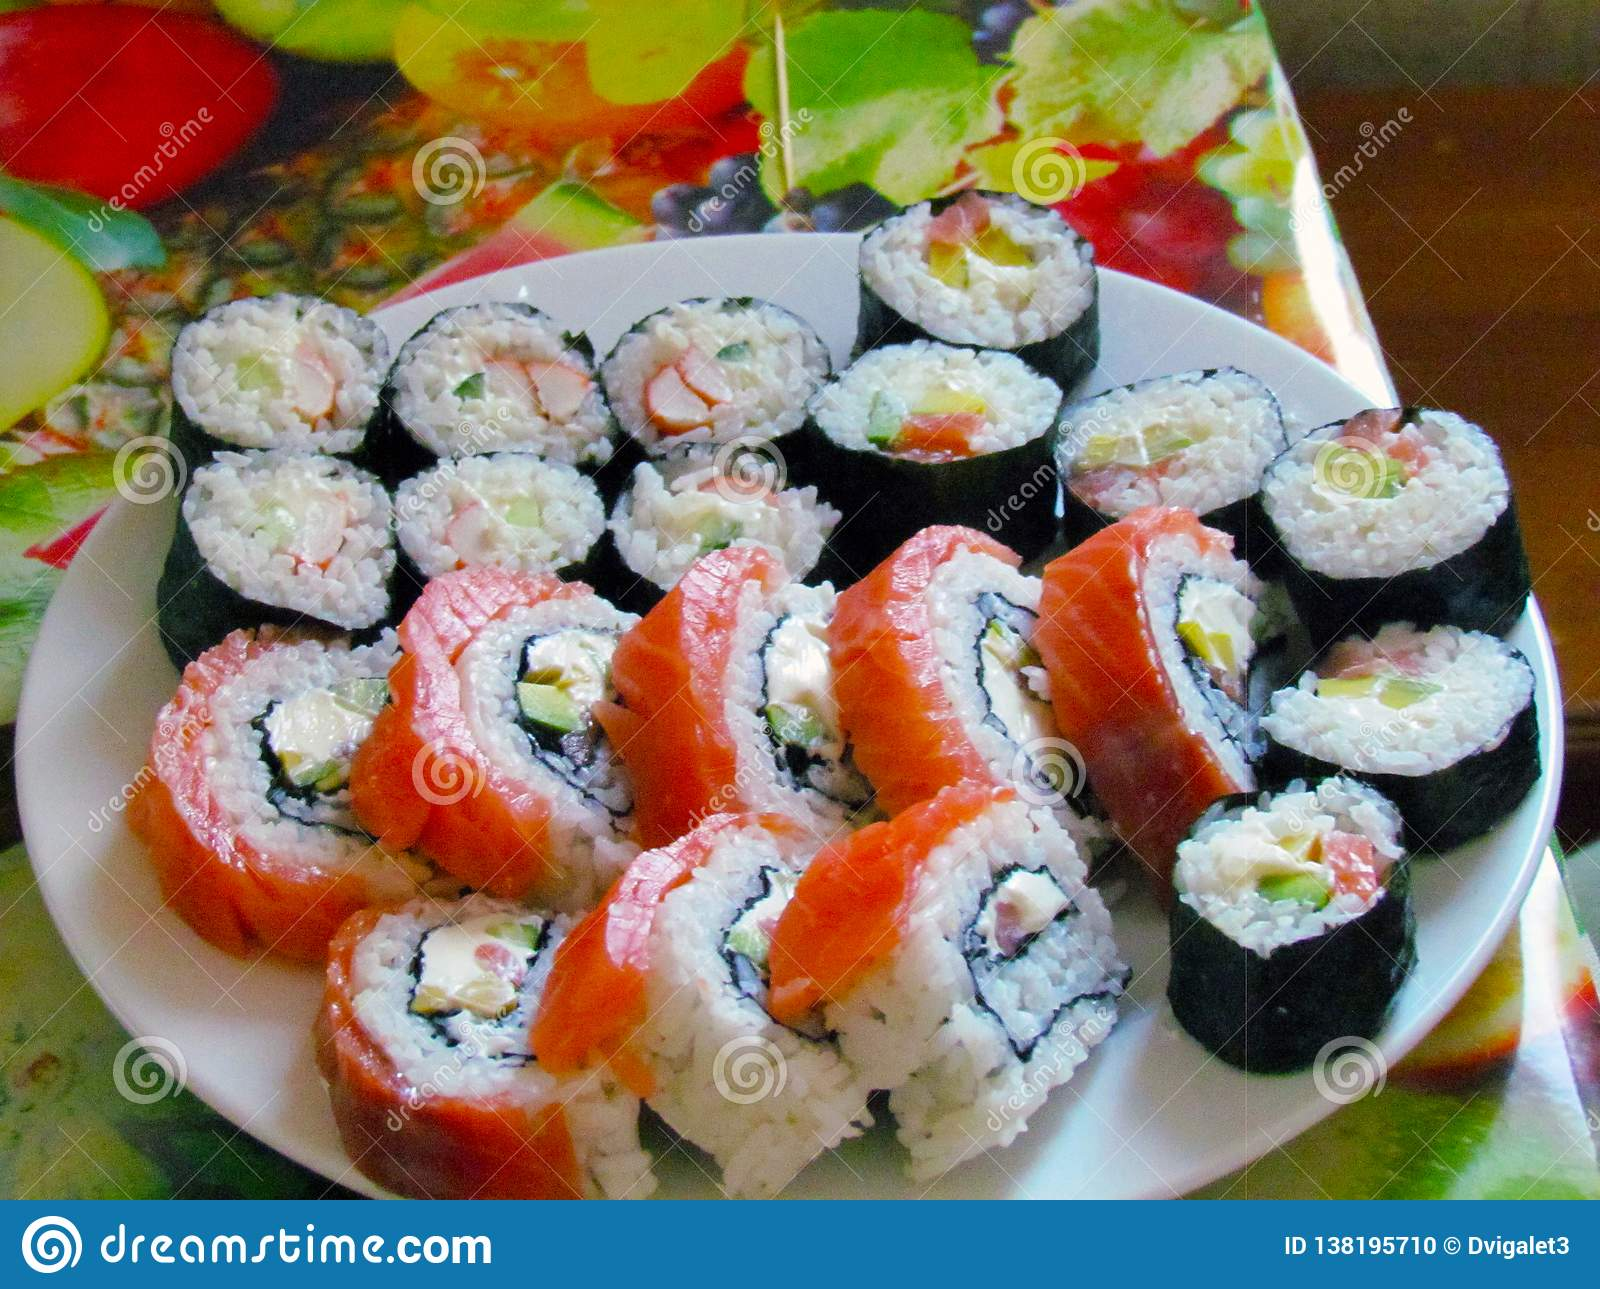 A plate full of fresh, mouth-watering sushi